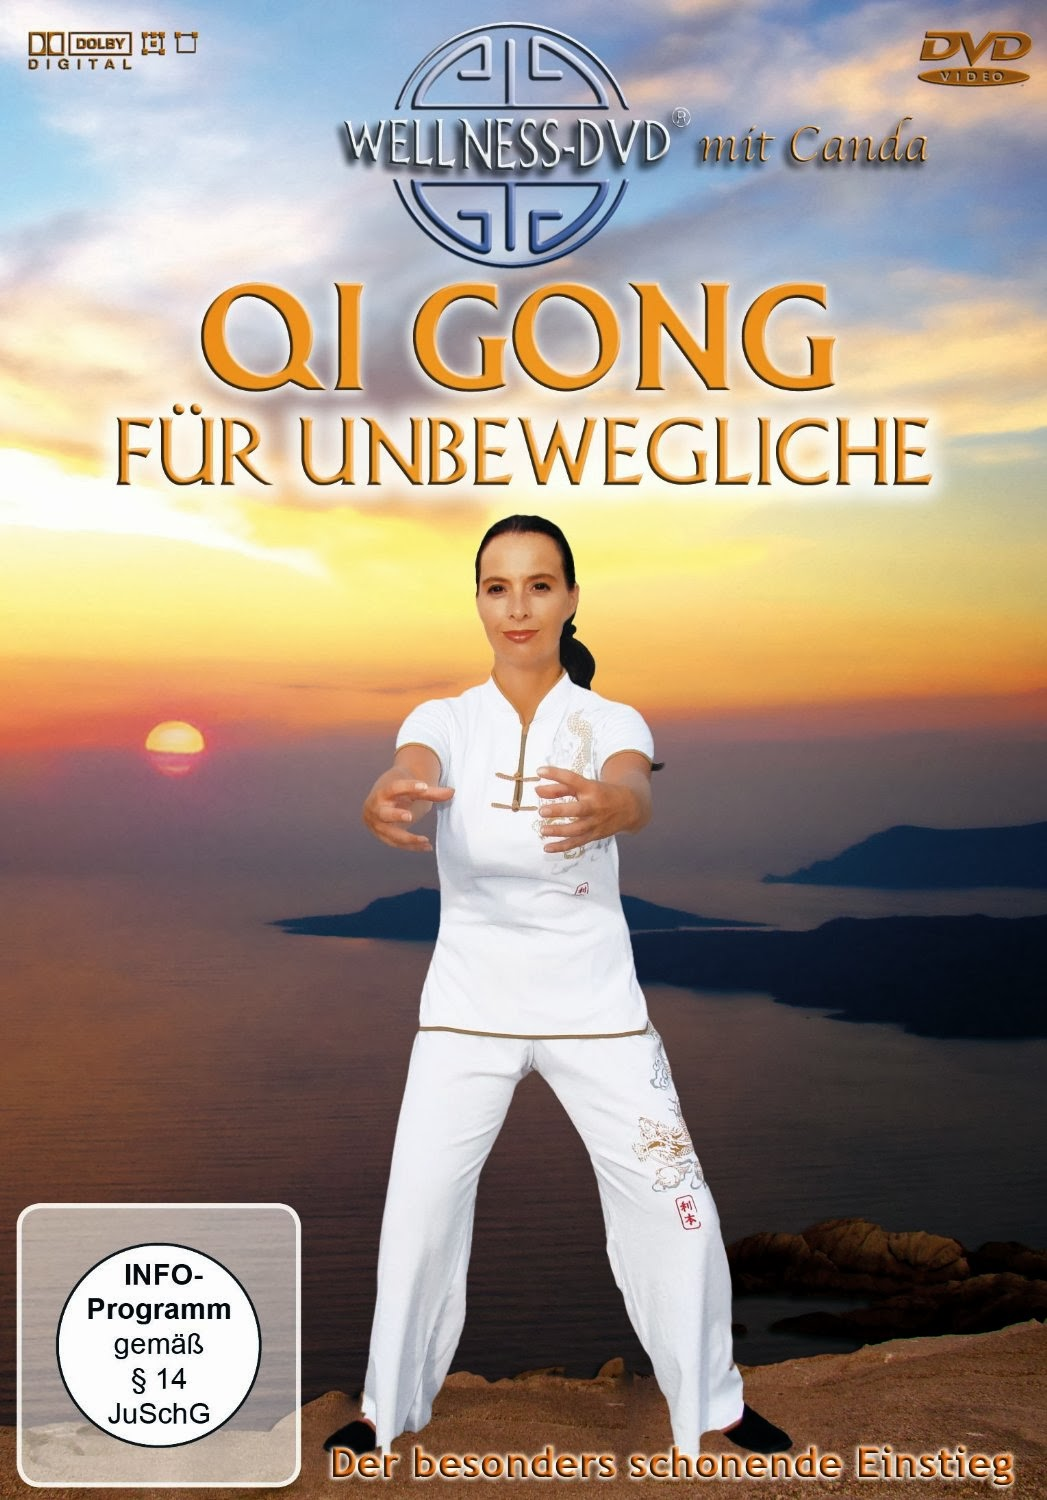 canda qi gong f r unbewegliche der sanfte einstieg import allemand telechargement gratuit. Black Bedroom Furniture Sets. Home Design Ideas